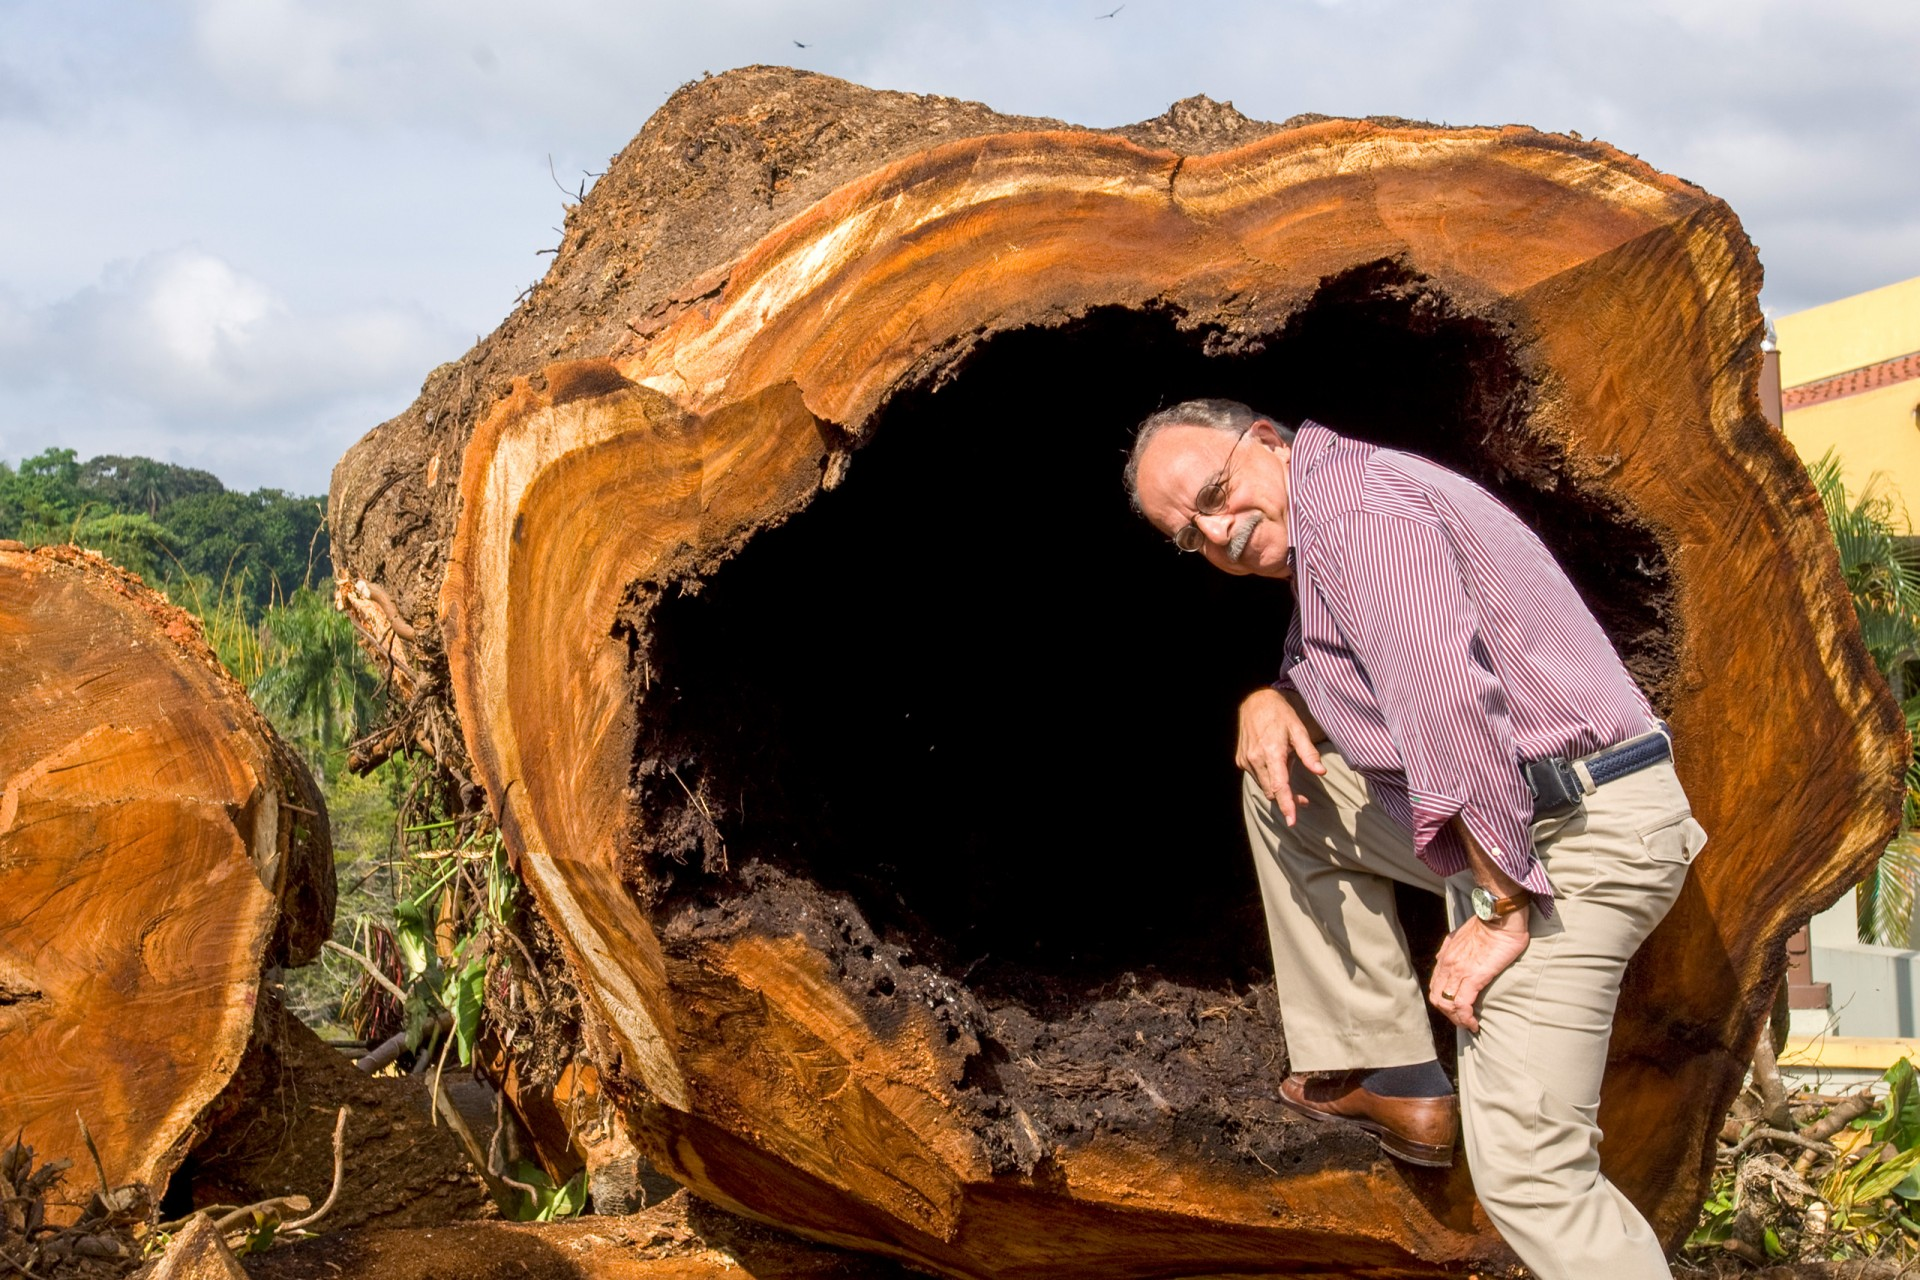 Ira Rubinoff stands inside a section of the felled corotú tree